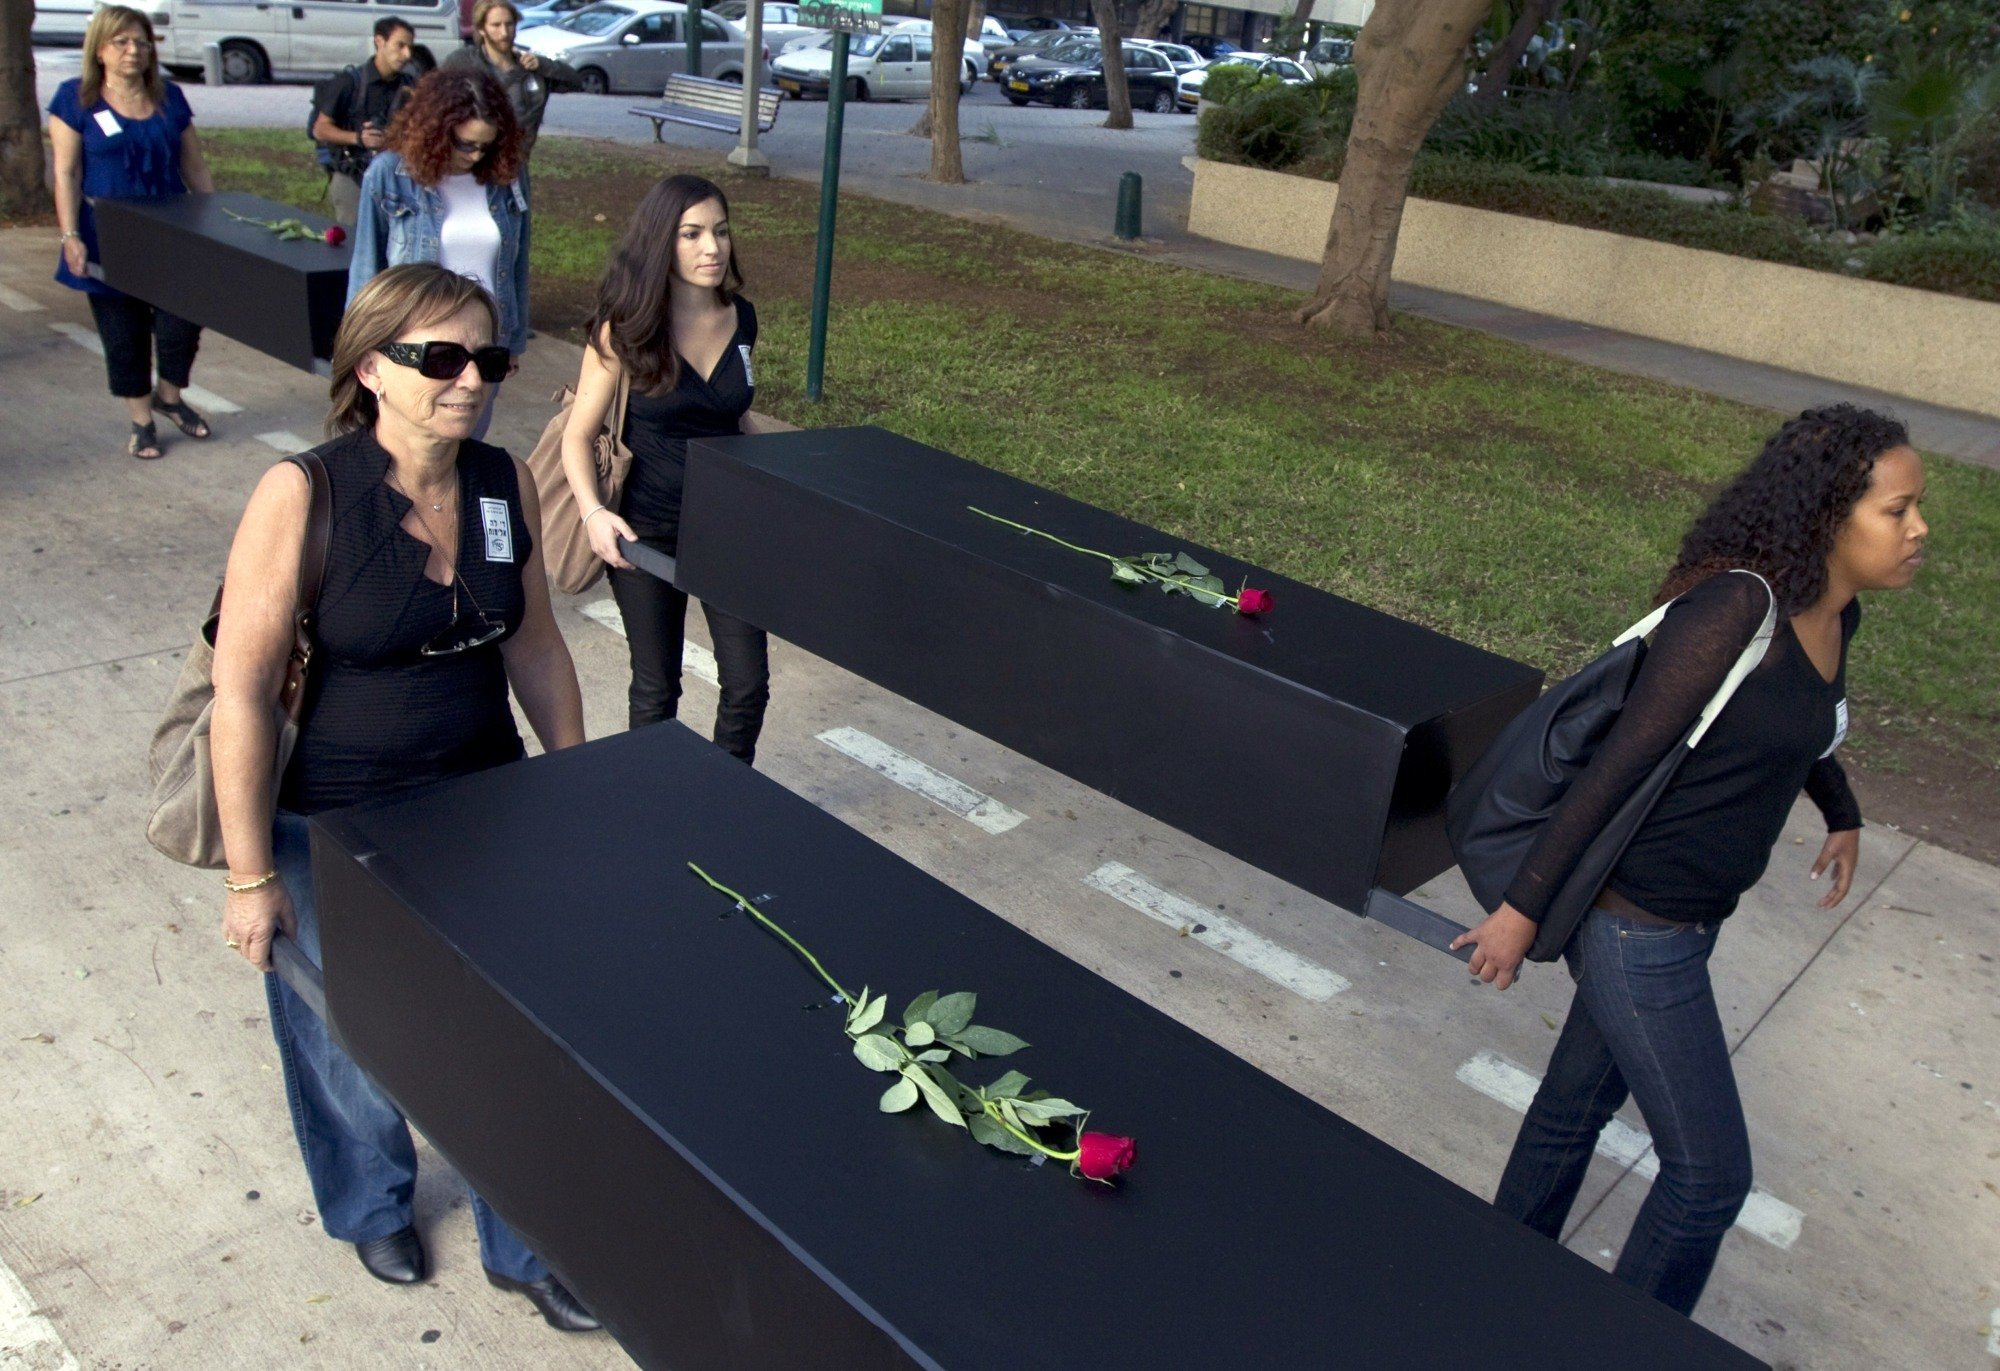 Israelis take part in a mock funeral to raise the alarm over the growing number of women being killed in incidents of domestic violence across Israel on 25 November 2010 in Tel Aviv (AFP)